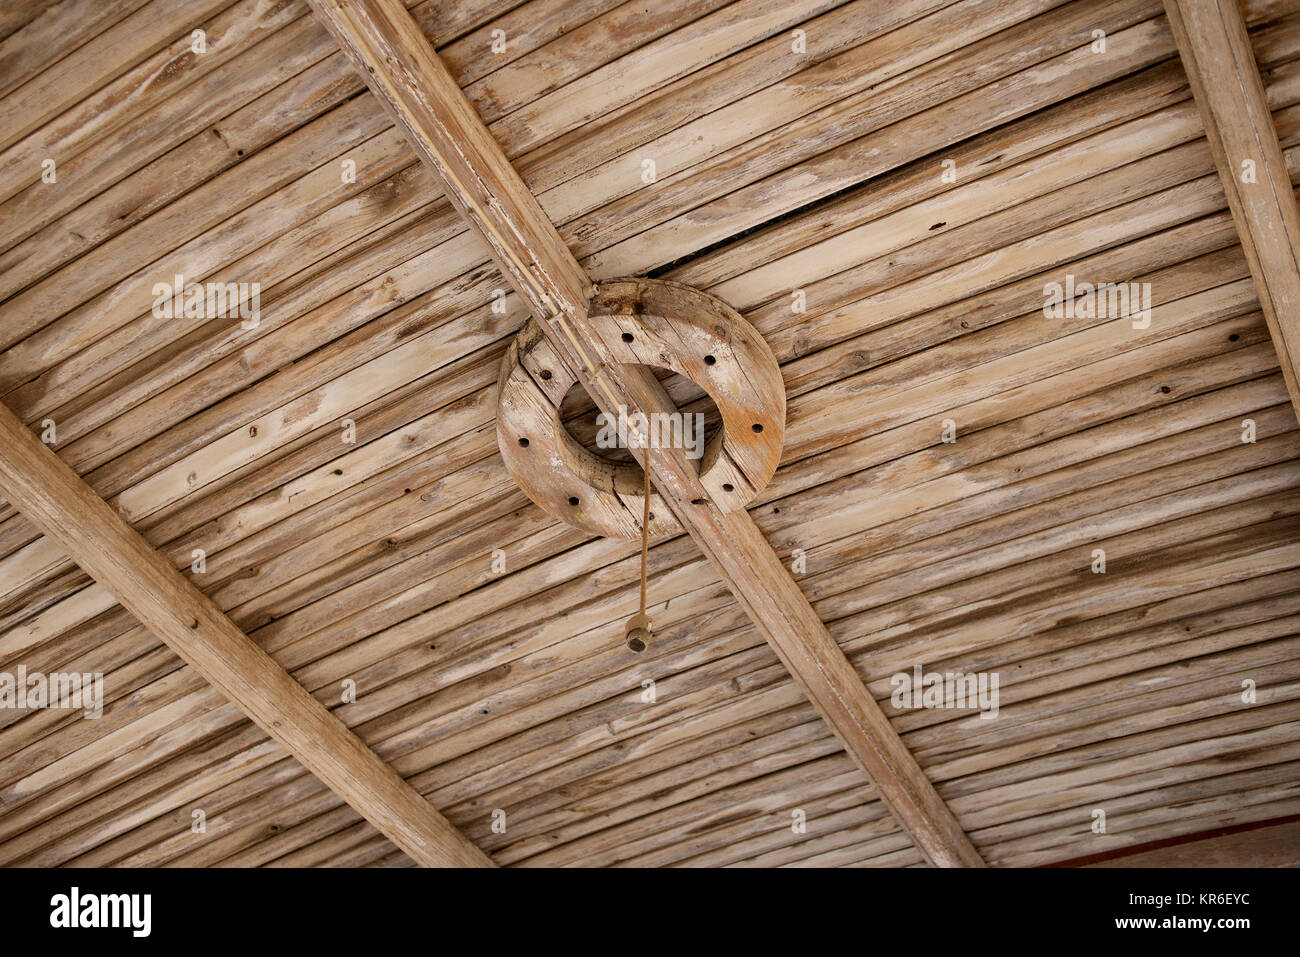 Old wooden ceiling timbers - patterns - Stock Image